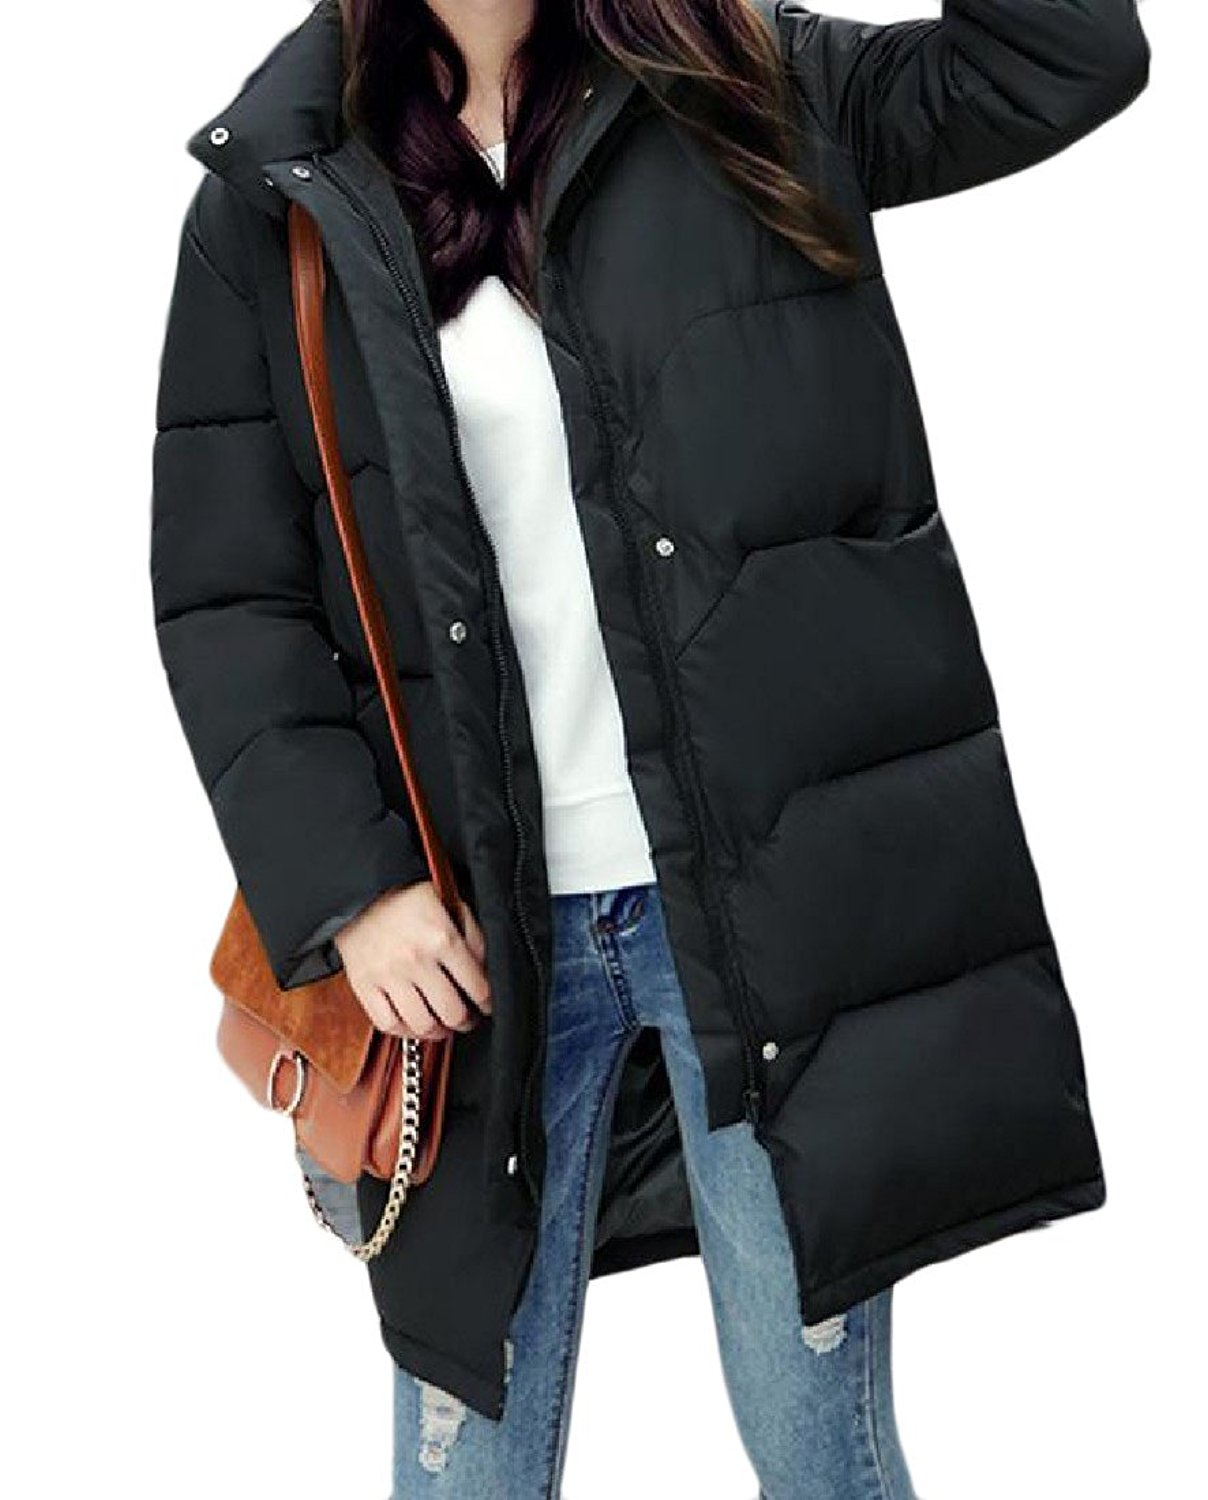 Sheng Xi Women Pockets Oversized Stand Collar Thicken Stylish Down Coats